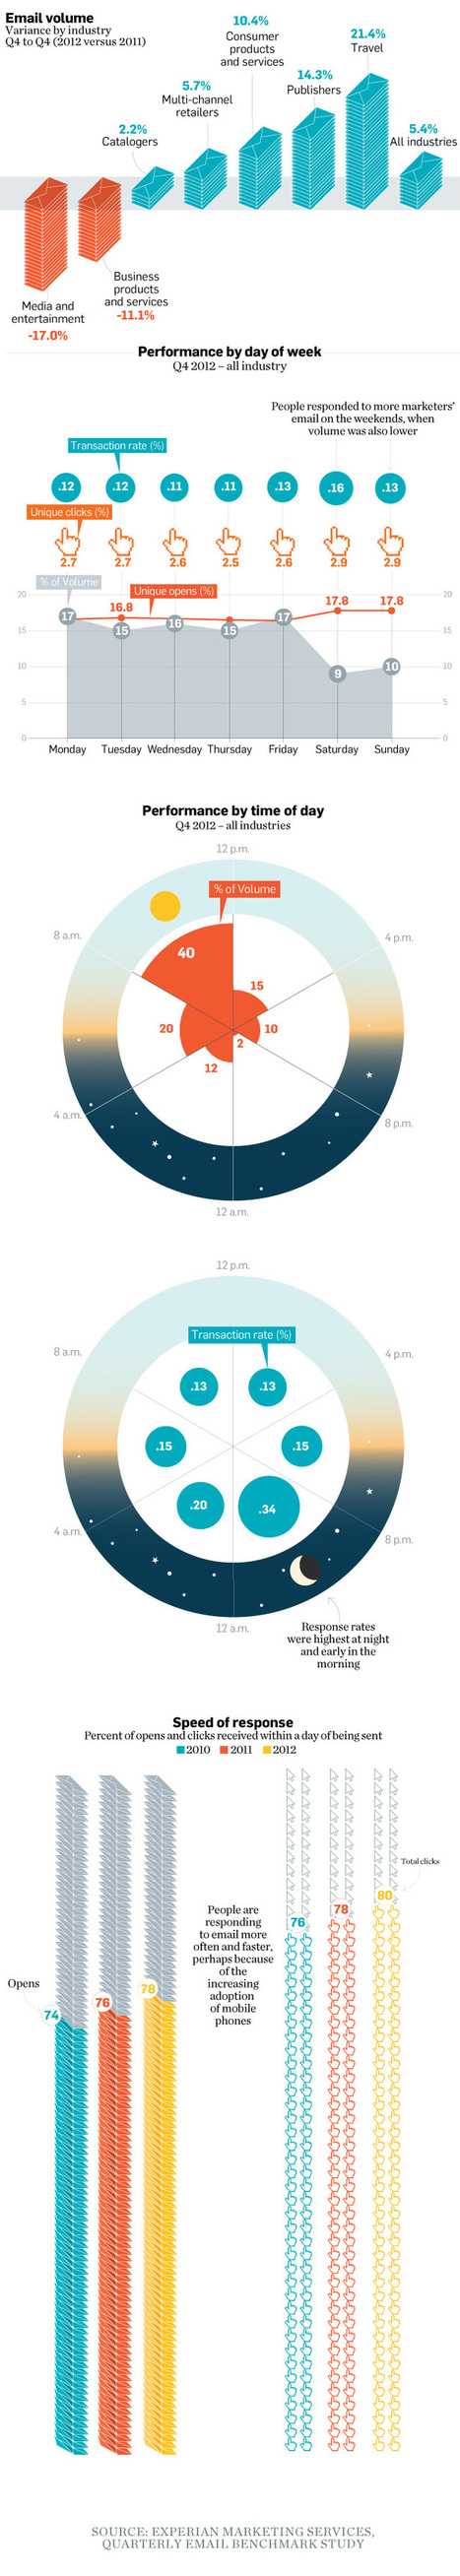 6 case studies & infographics: the optimal time to send emails | visualizing social media | Scoop.it